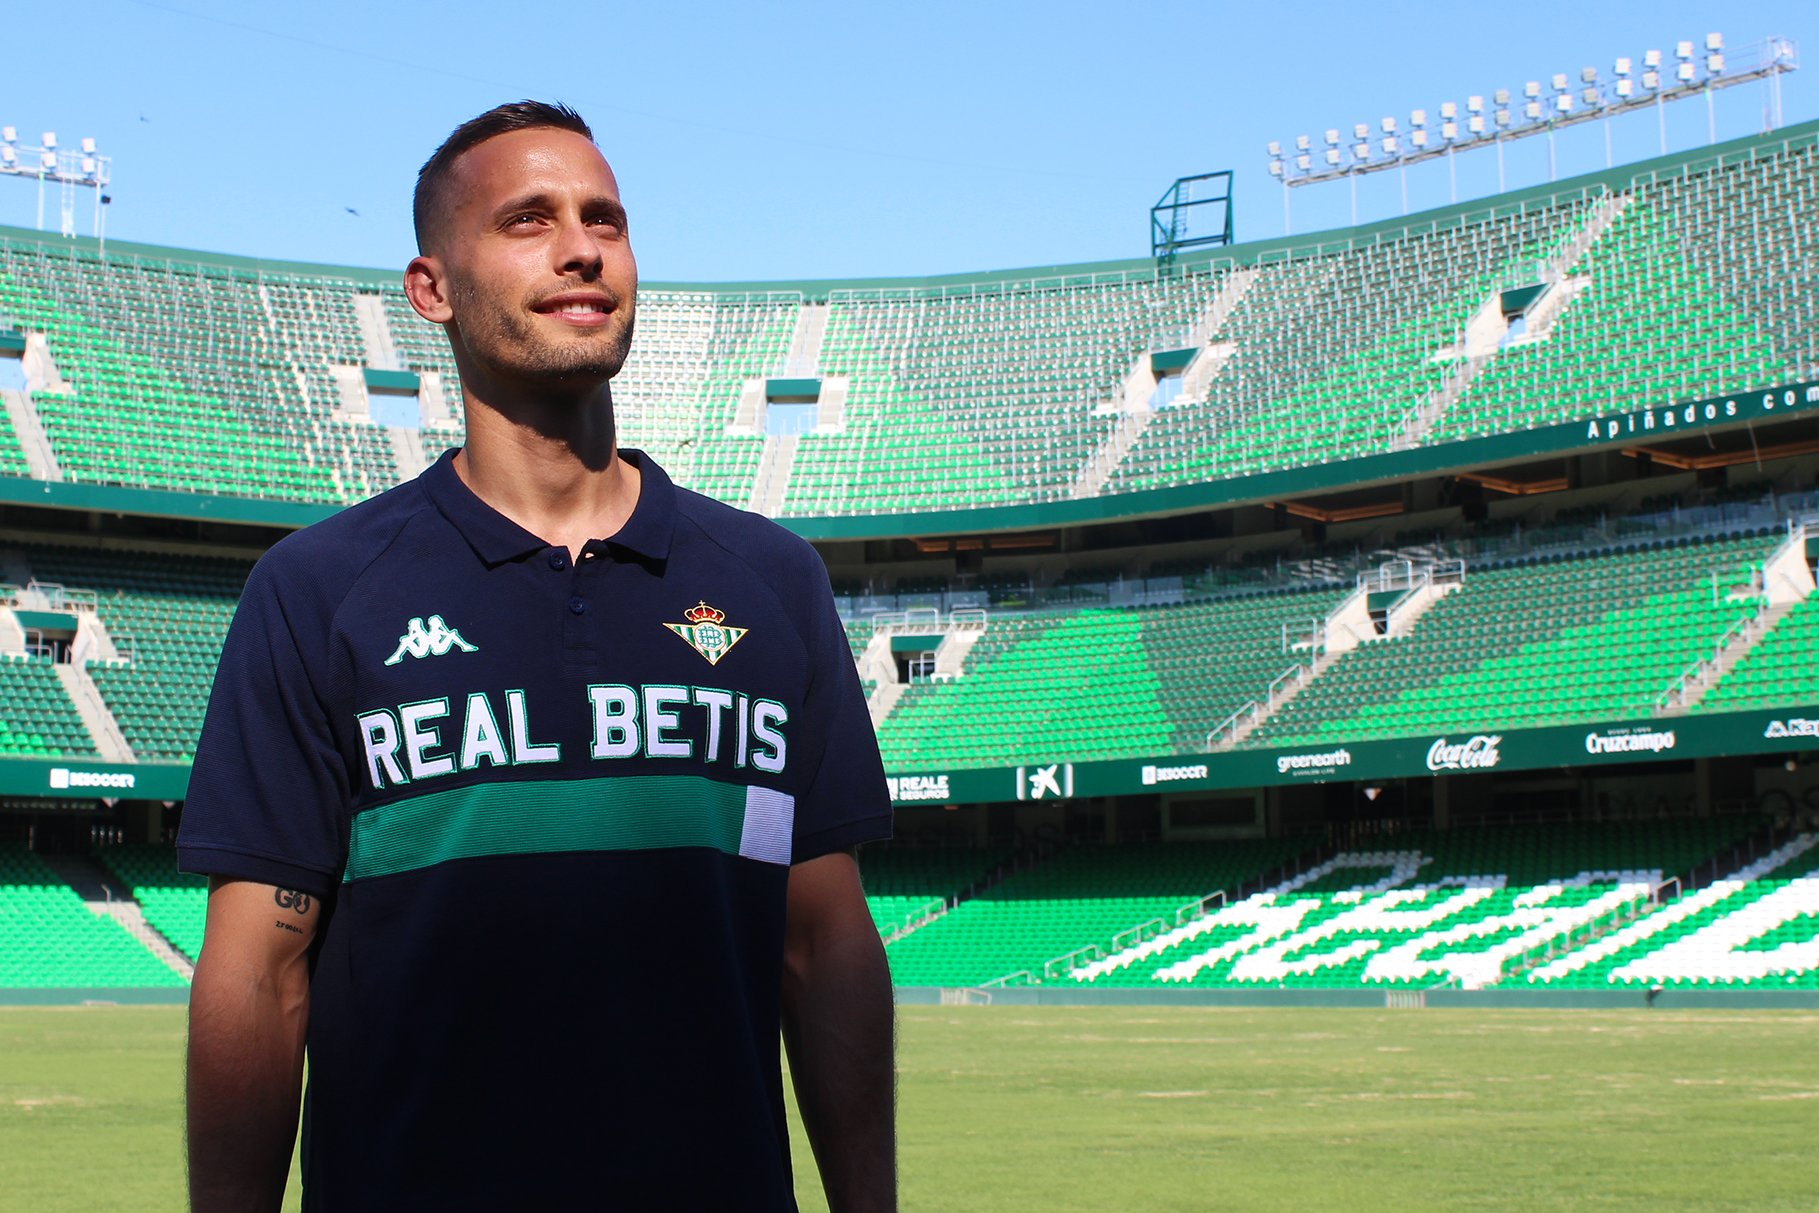 Canales Real Betis